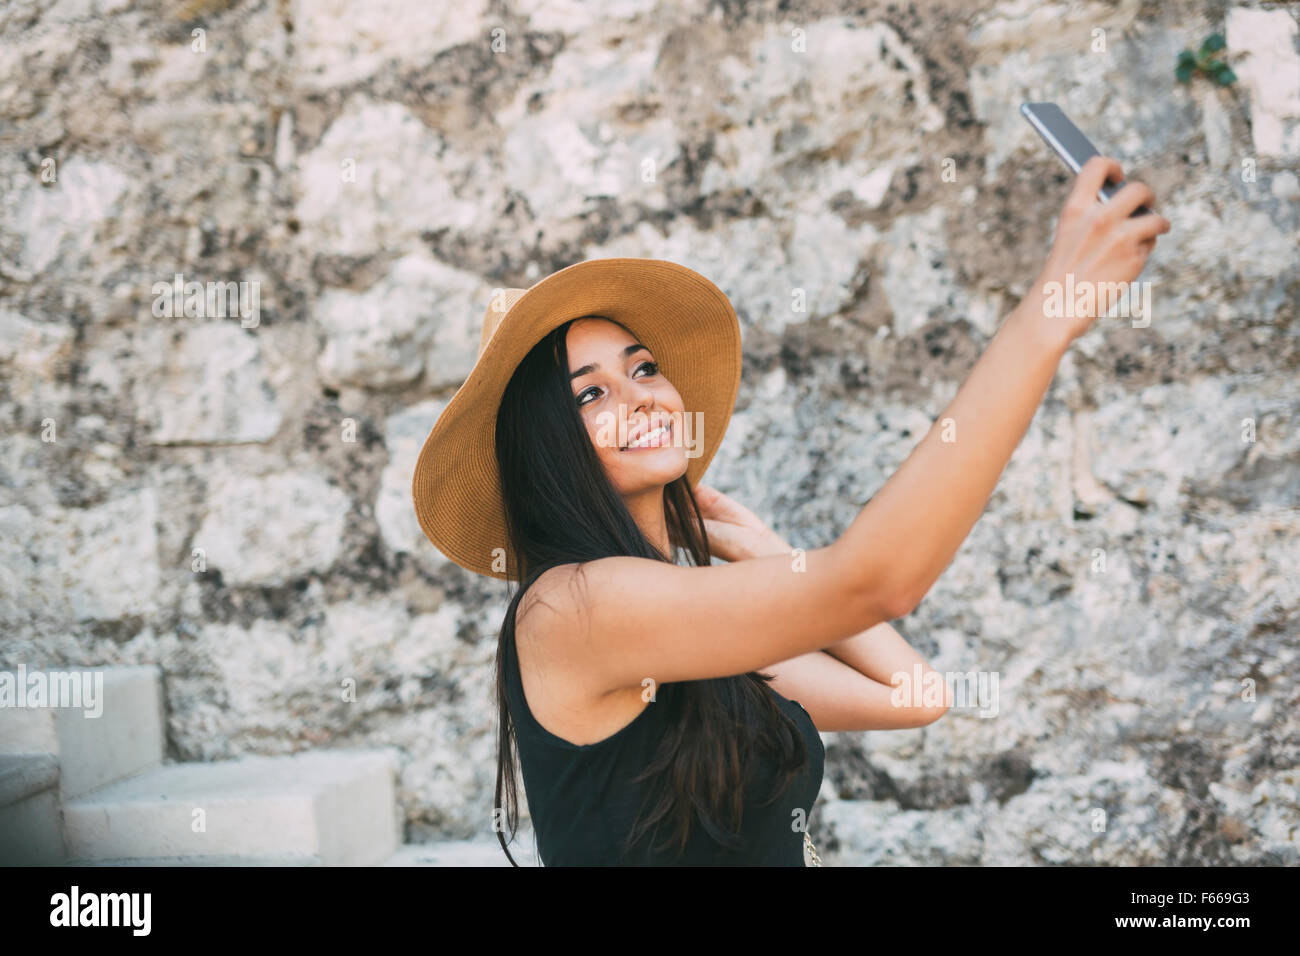 Beautiful girl taking a selfie and having a good time during summer - Stock Photo